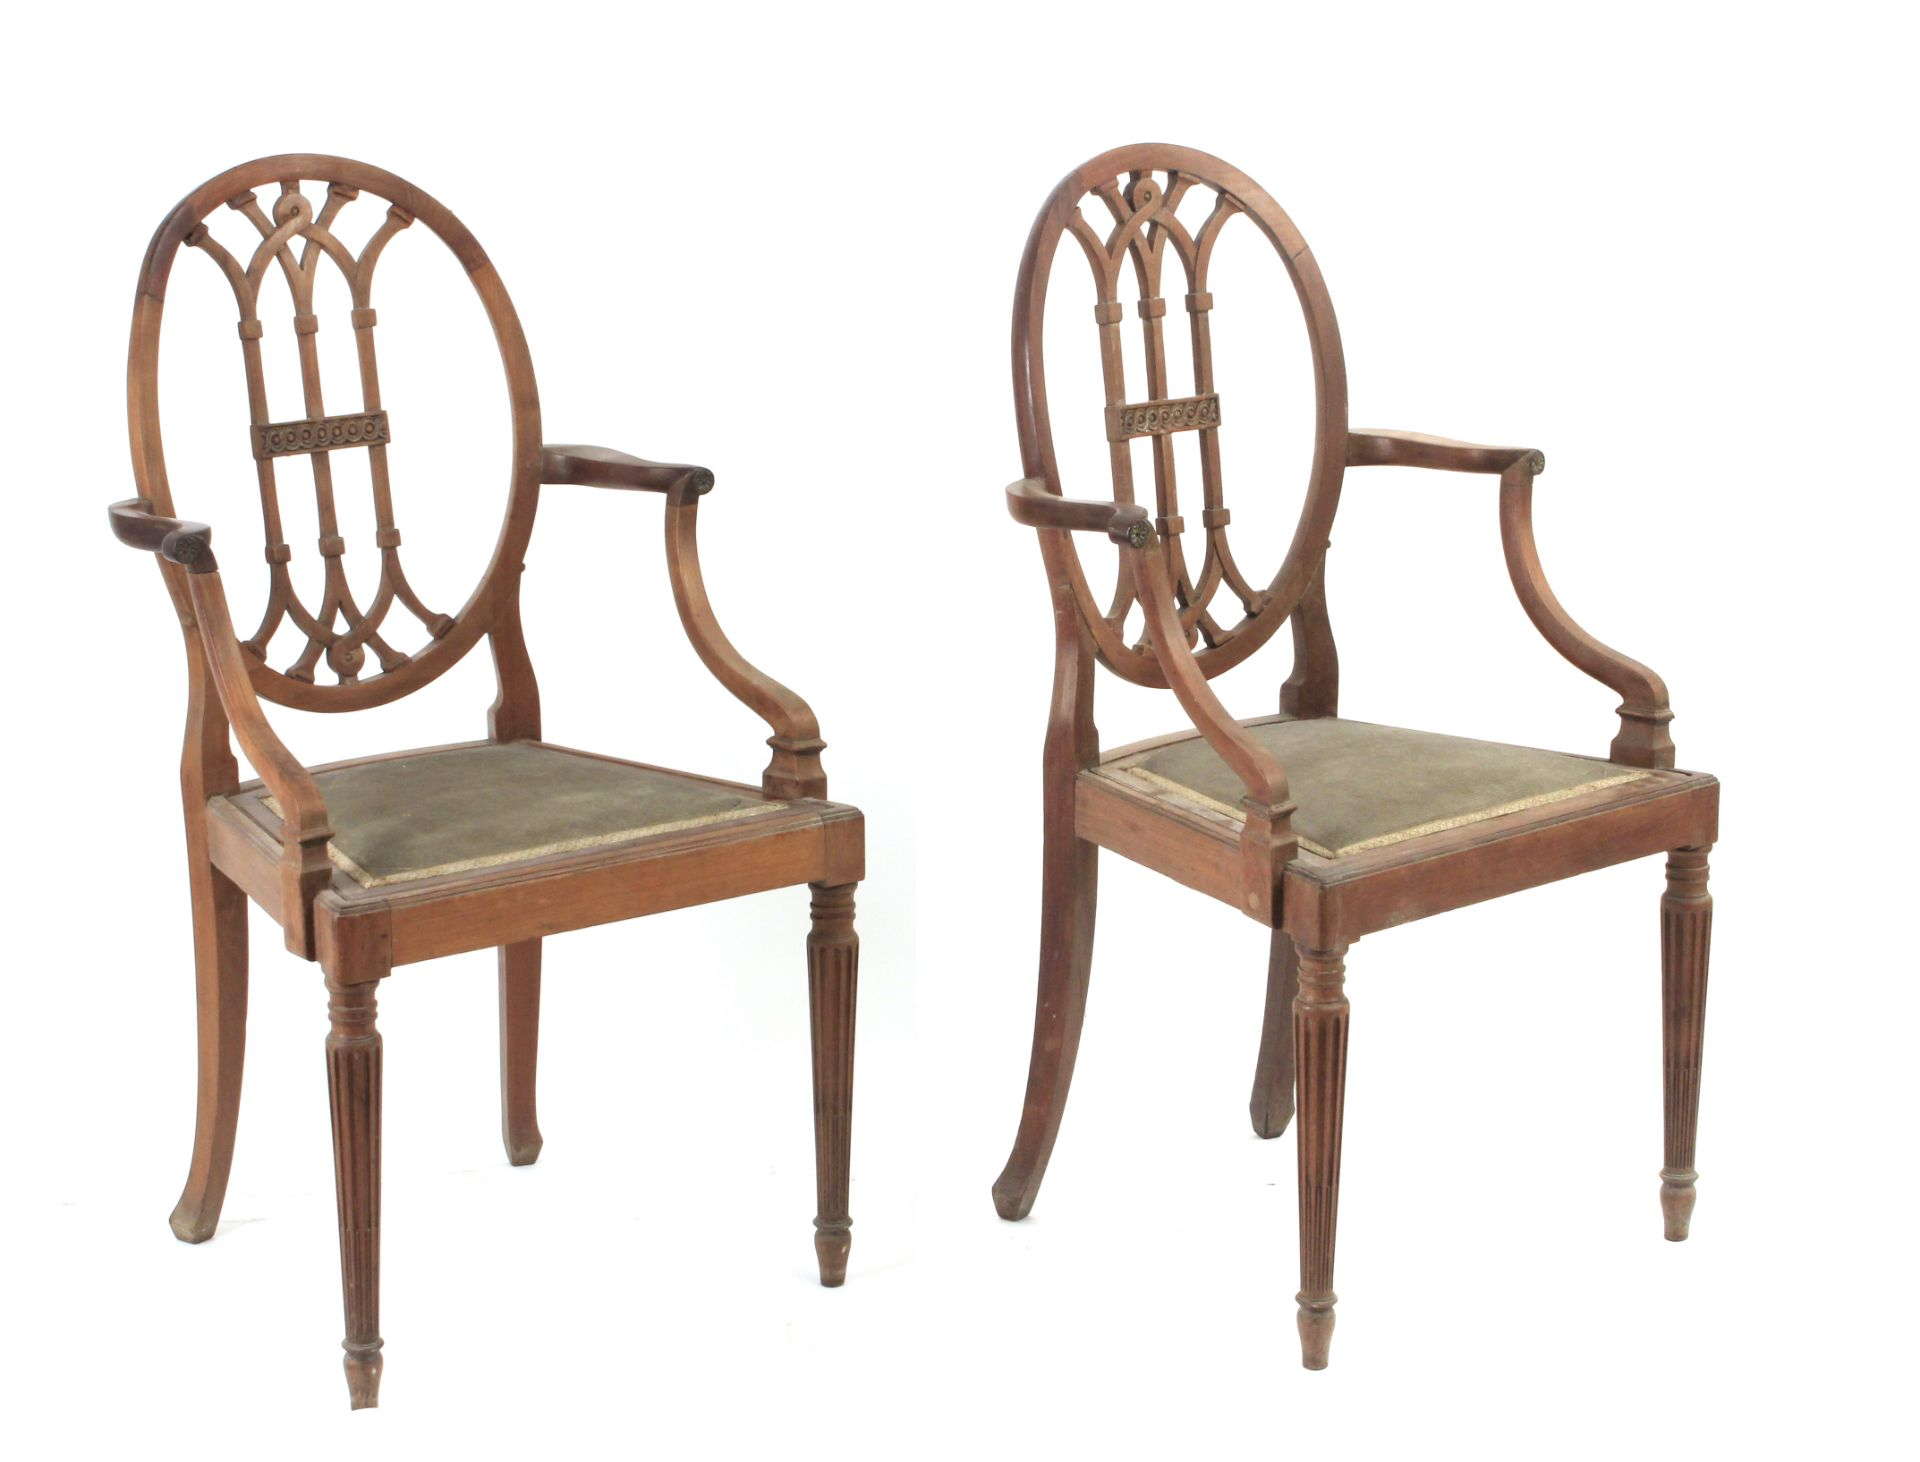 A pair of 19th century mahogany ship chairs